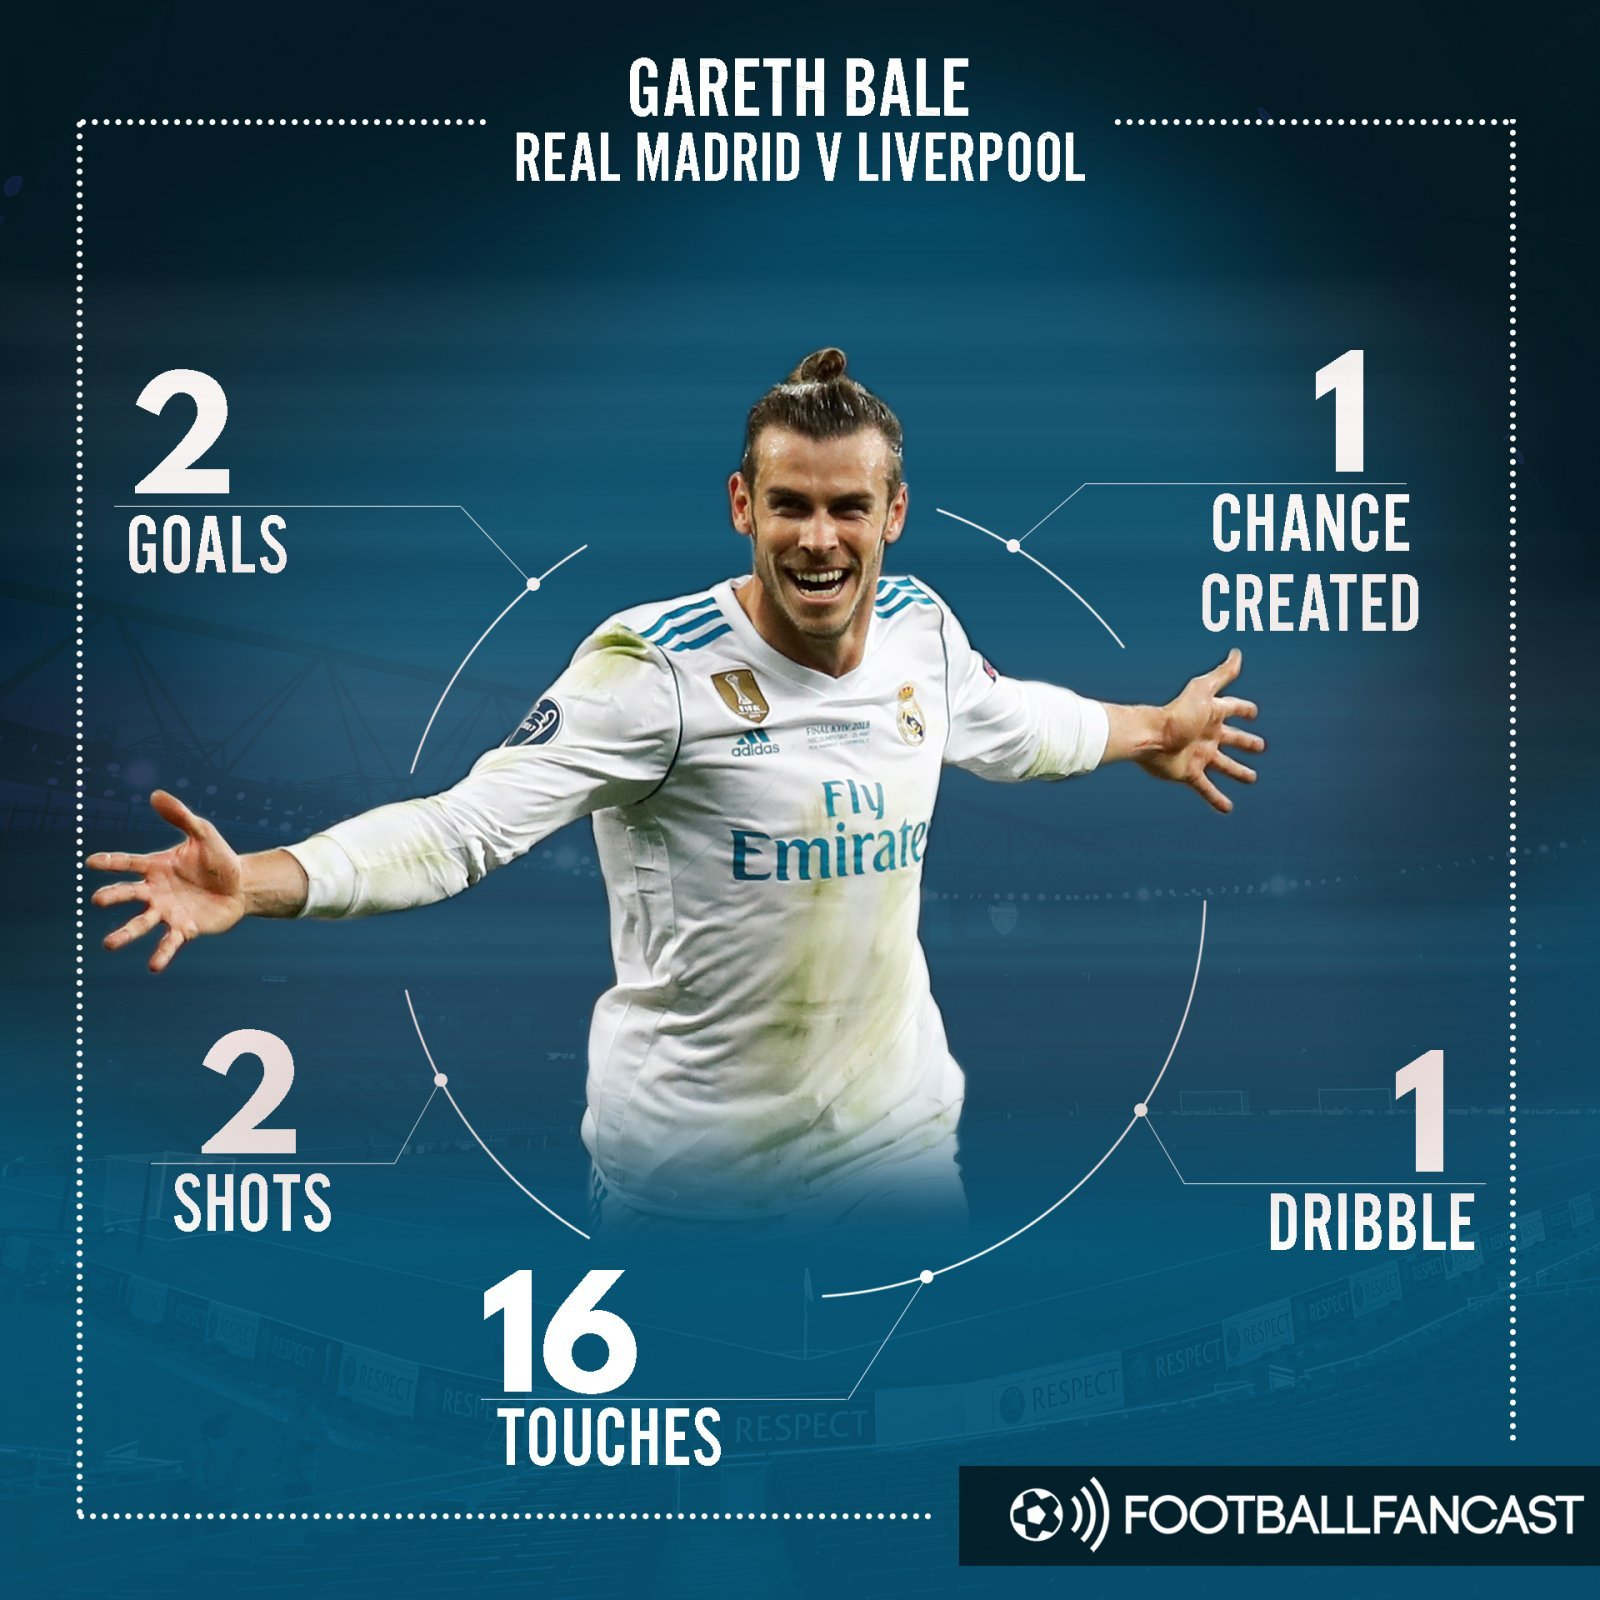 Gareth Bale's stats from the Champions League final